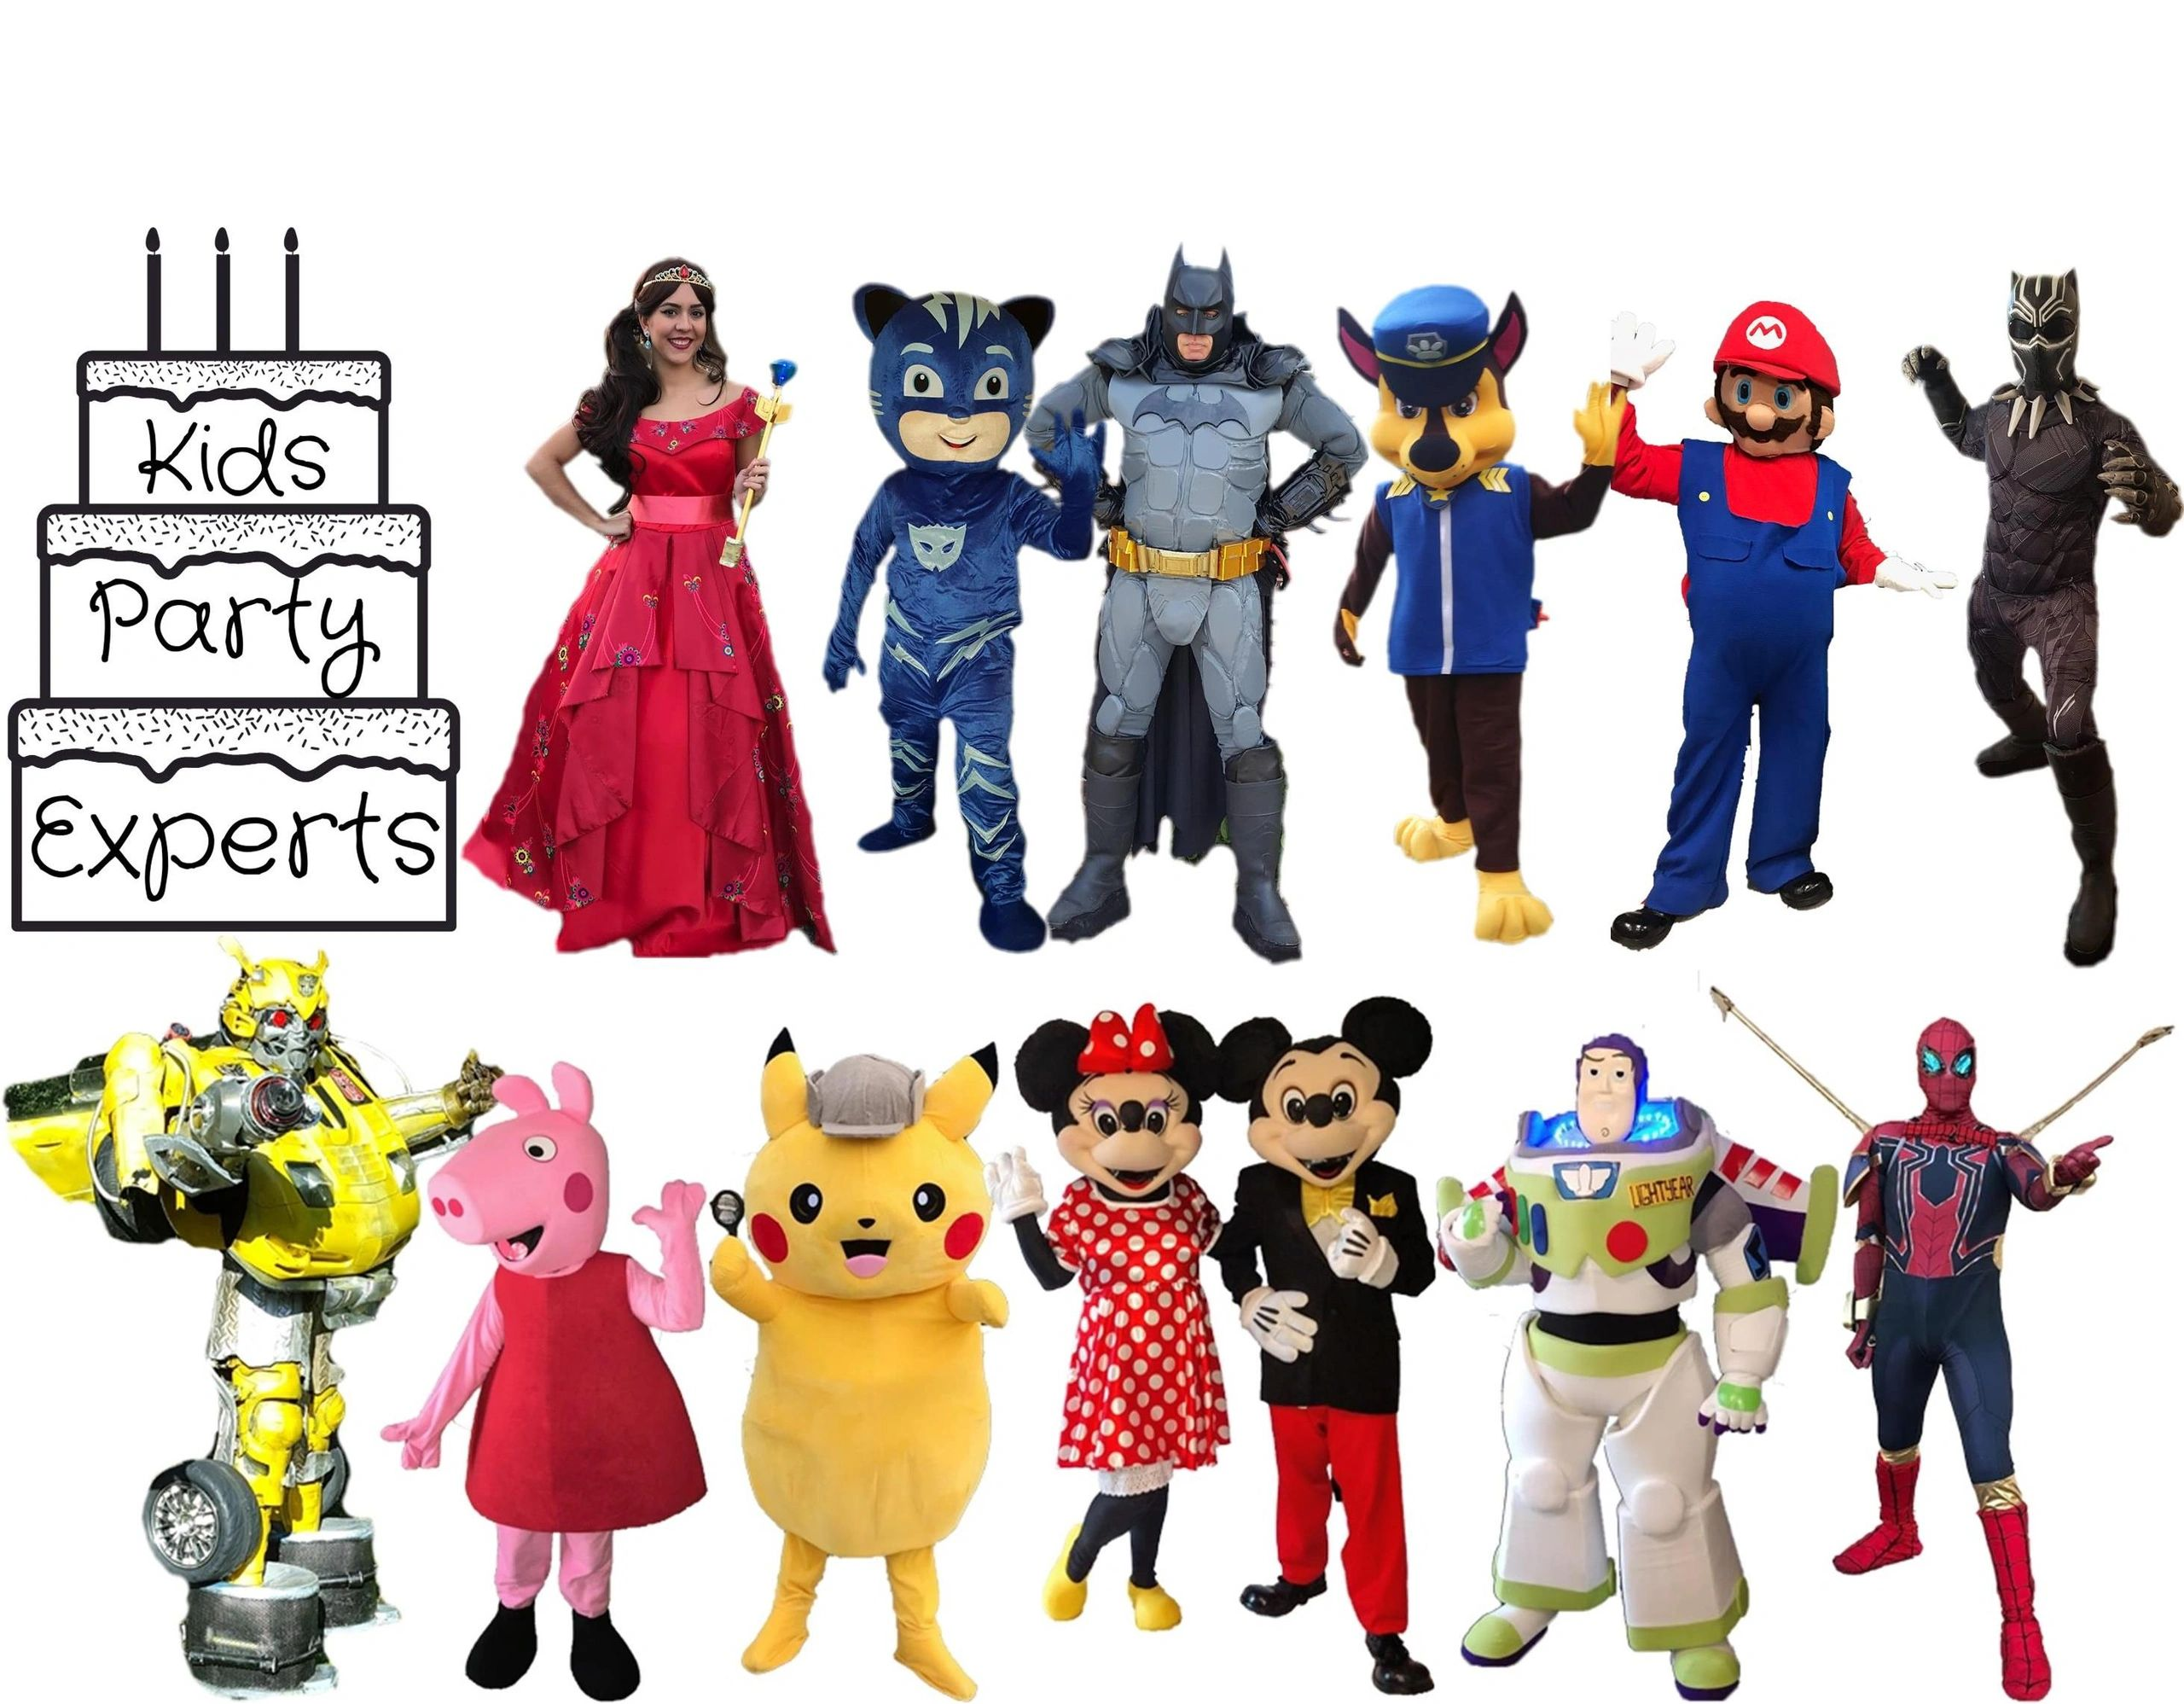 Kids Party for all your superhero characters, princess characters, & mascots.  Face paint & balloons